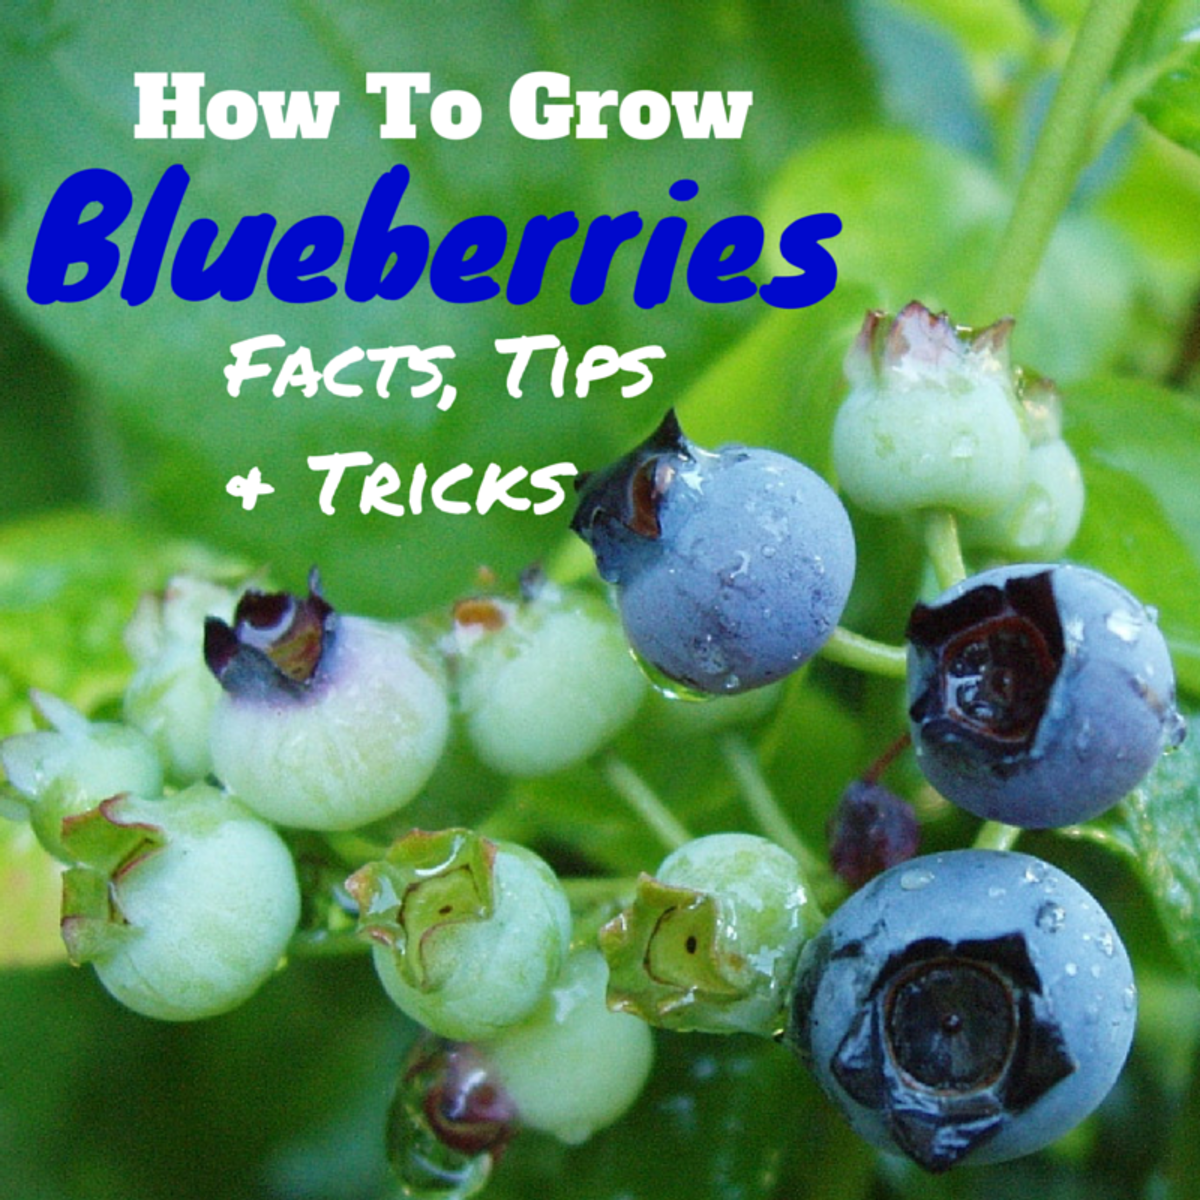 Facts, Tips and Tricks to Growing Blueberries